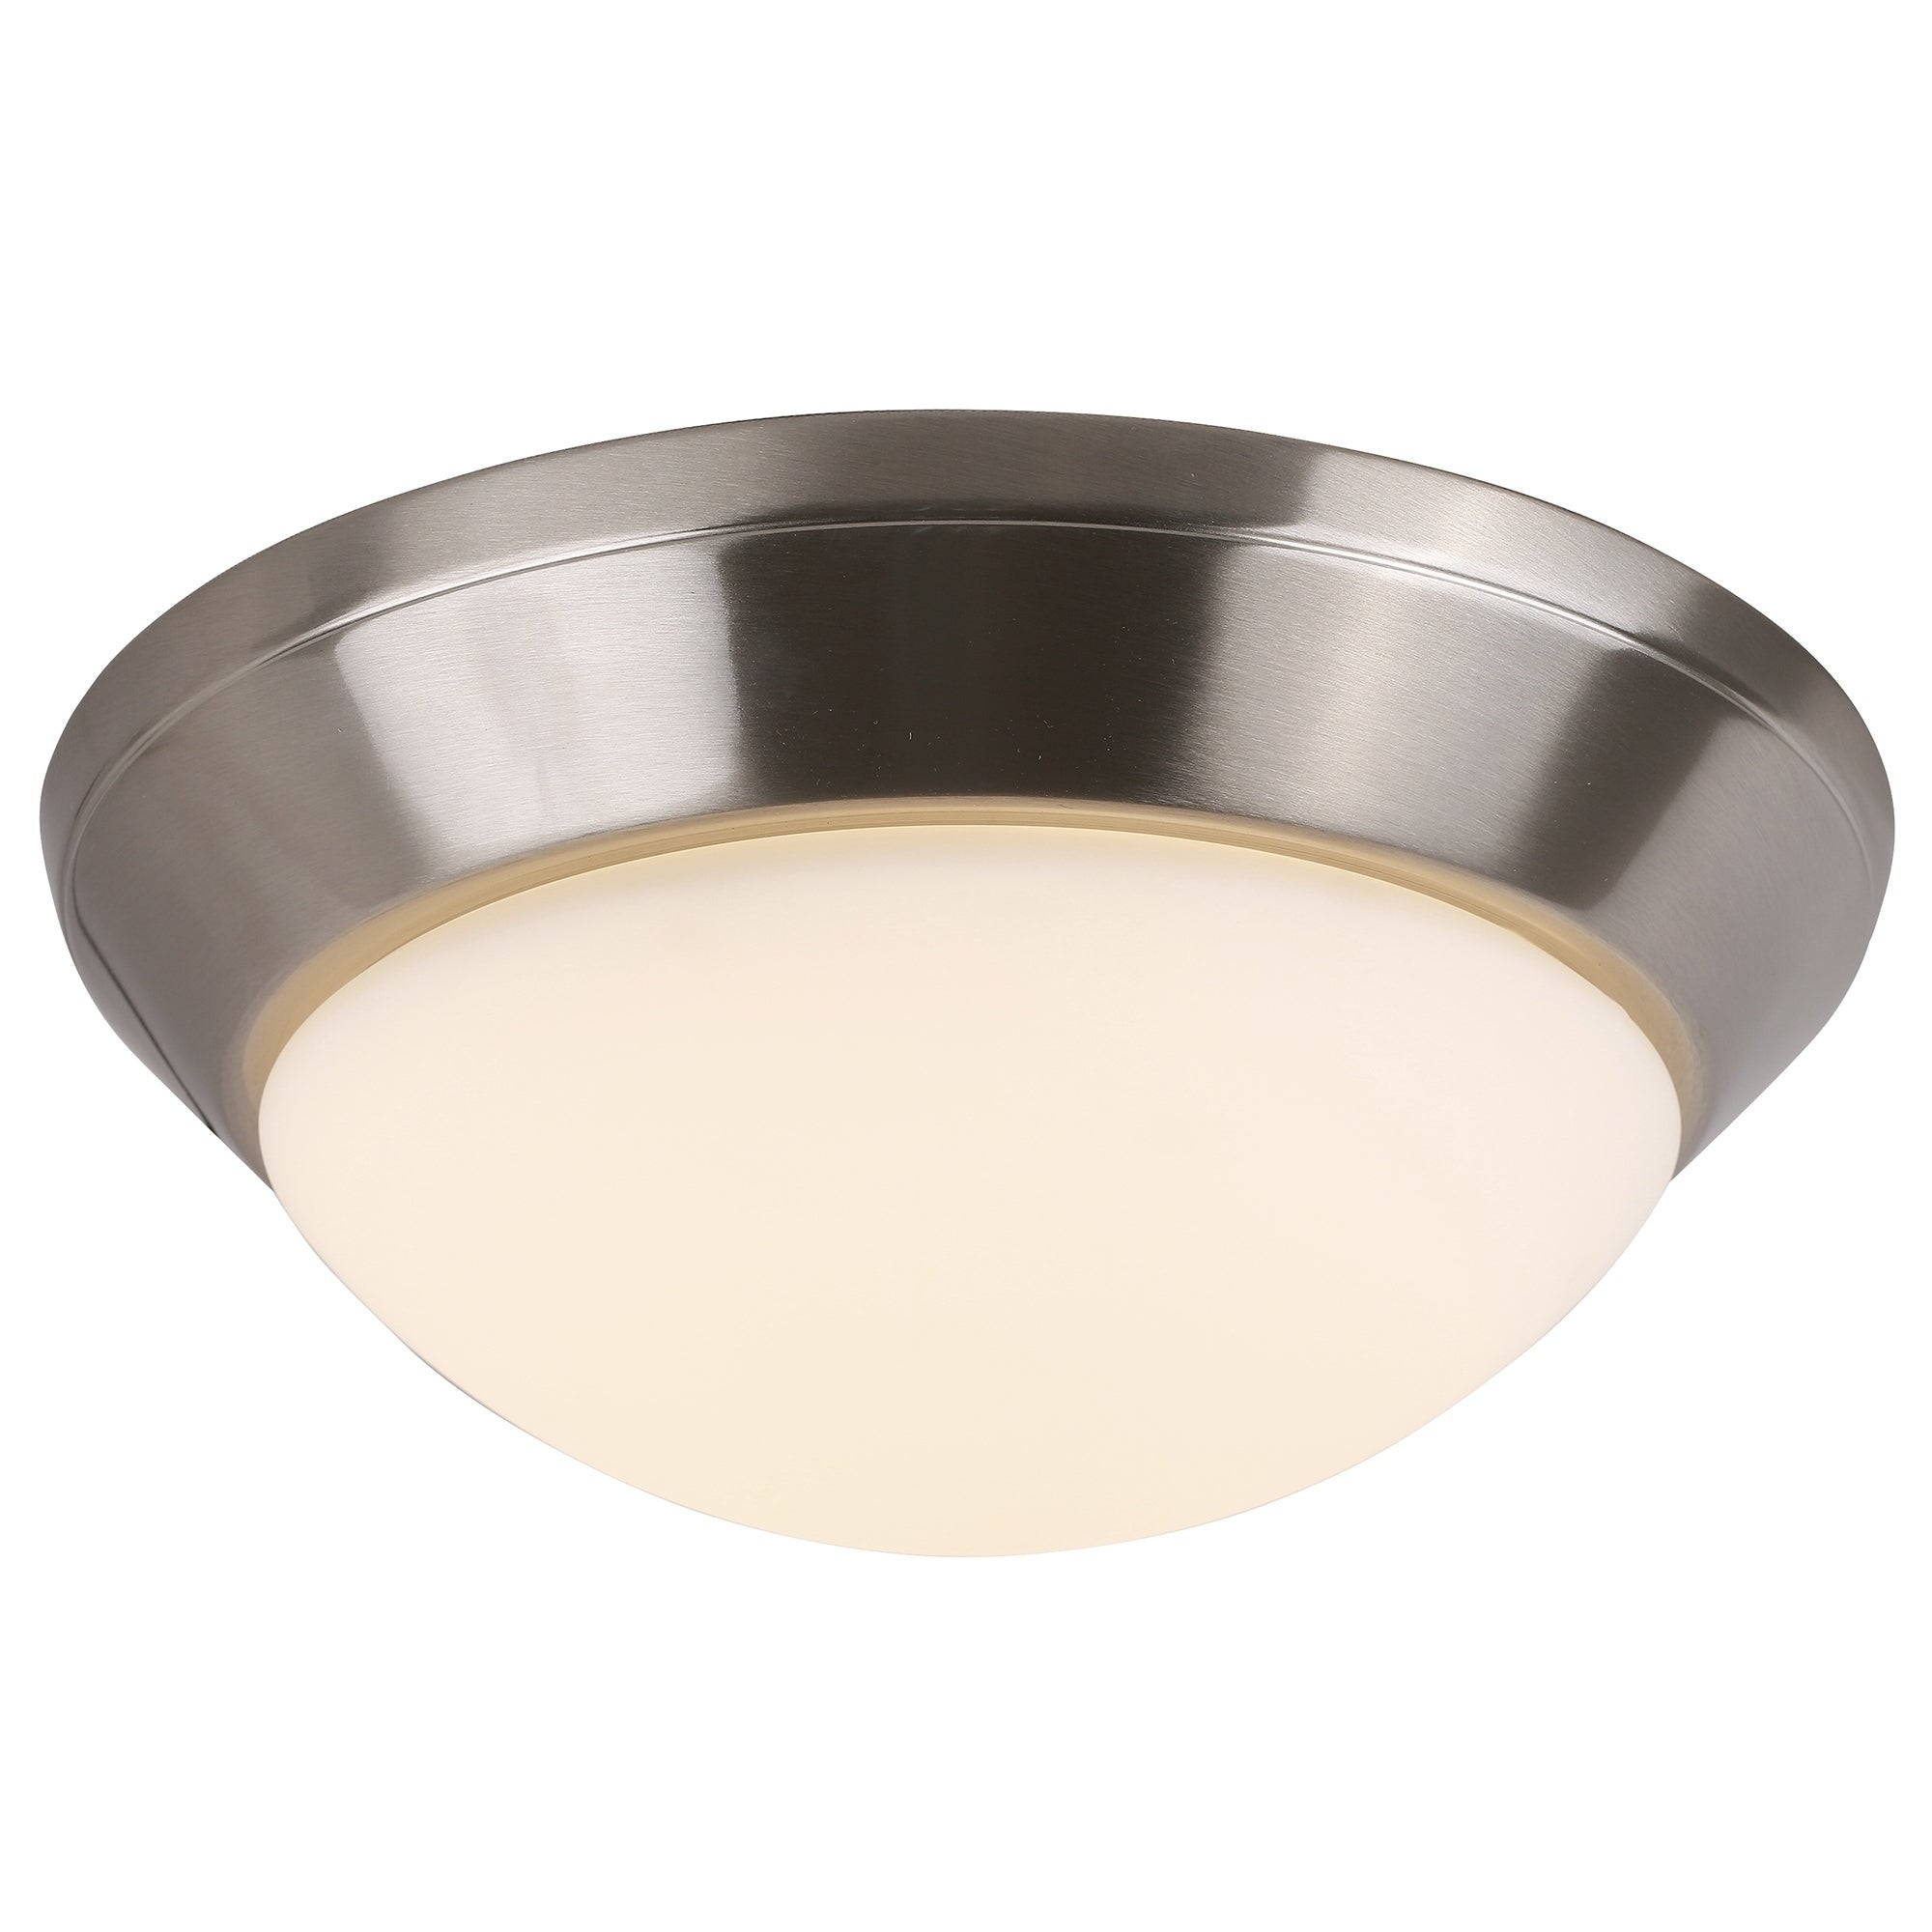 online store ed070 e0952 LED Flush Mount Ceiling light in Brushed Nickel